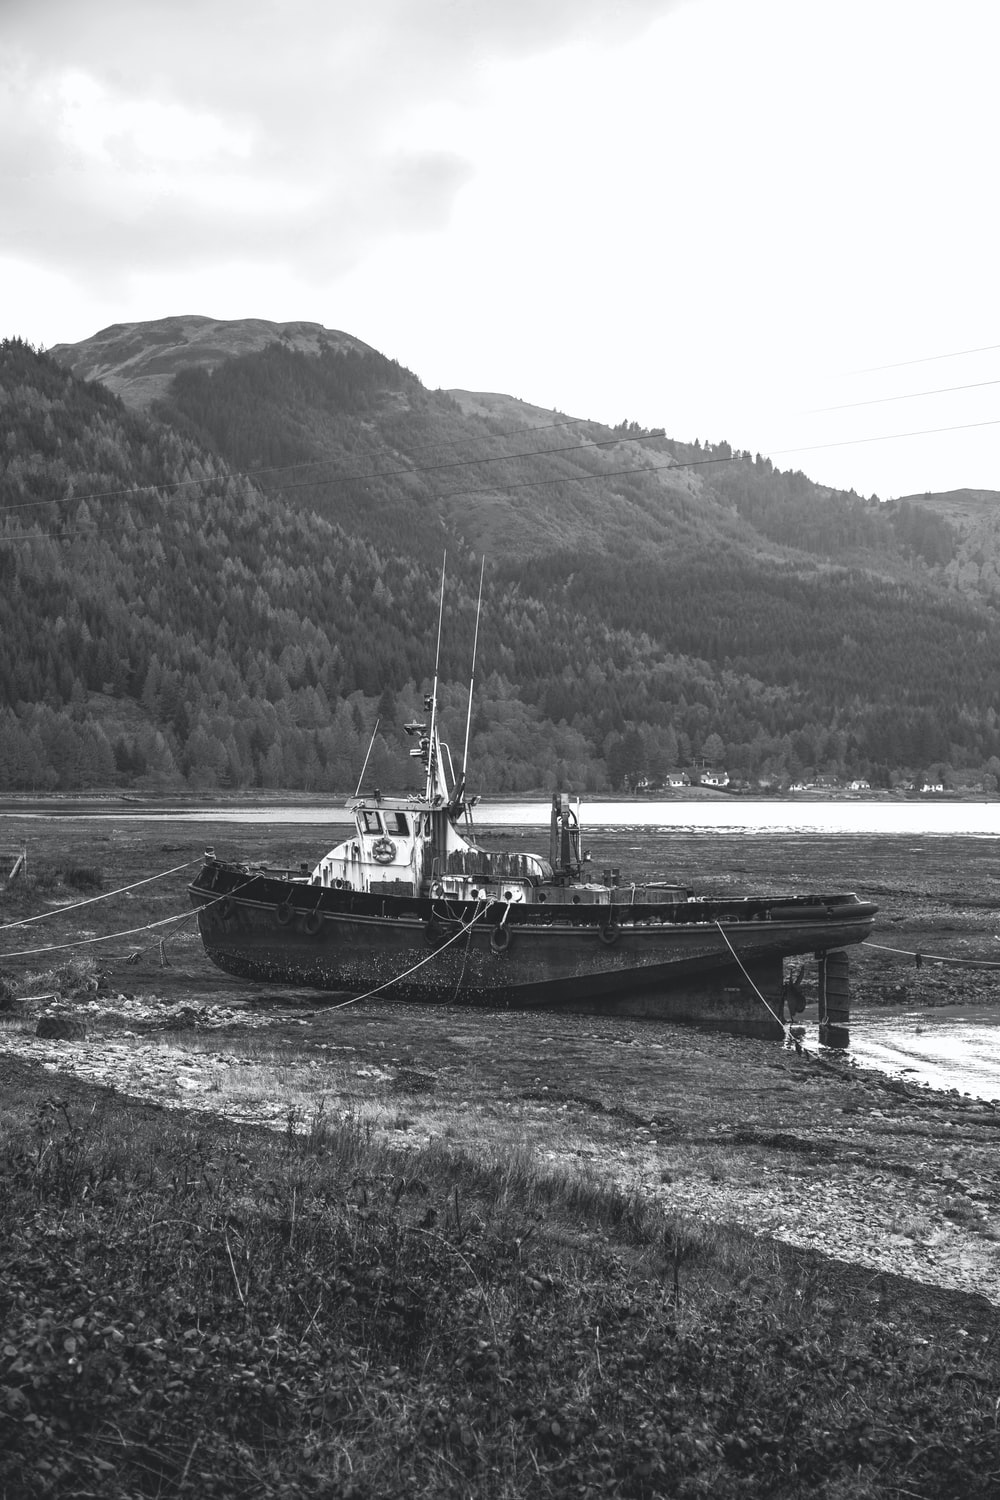 grayscale photo of boat on sea near mountain